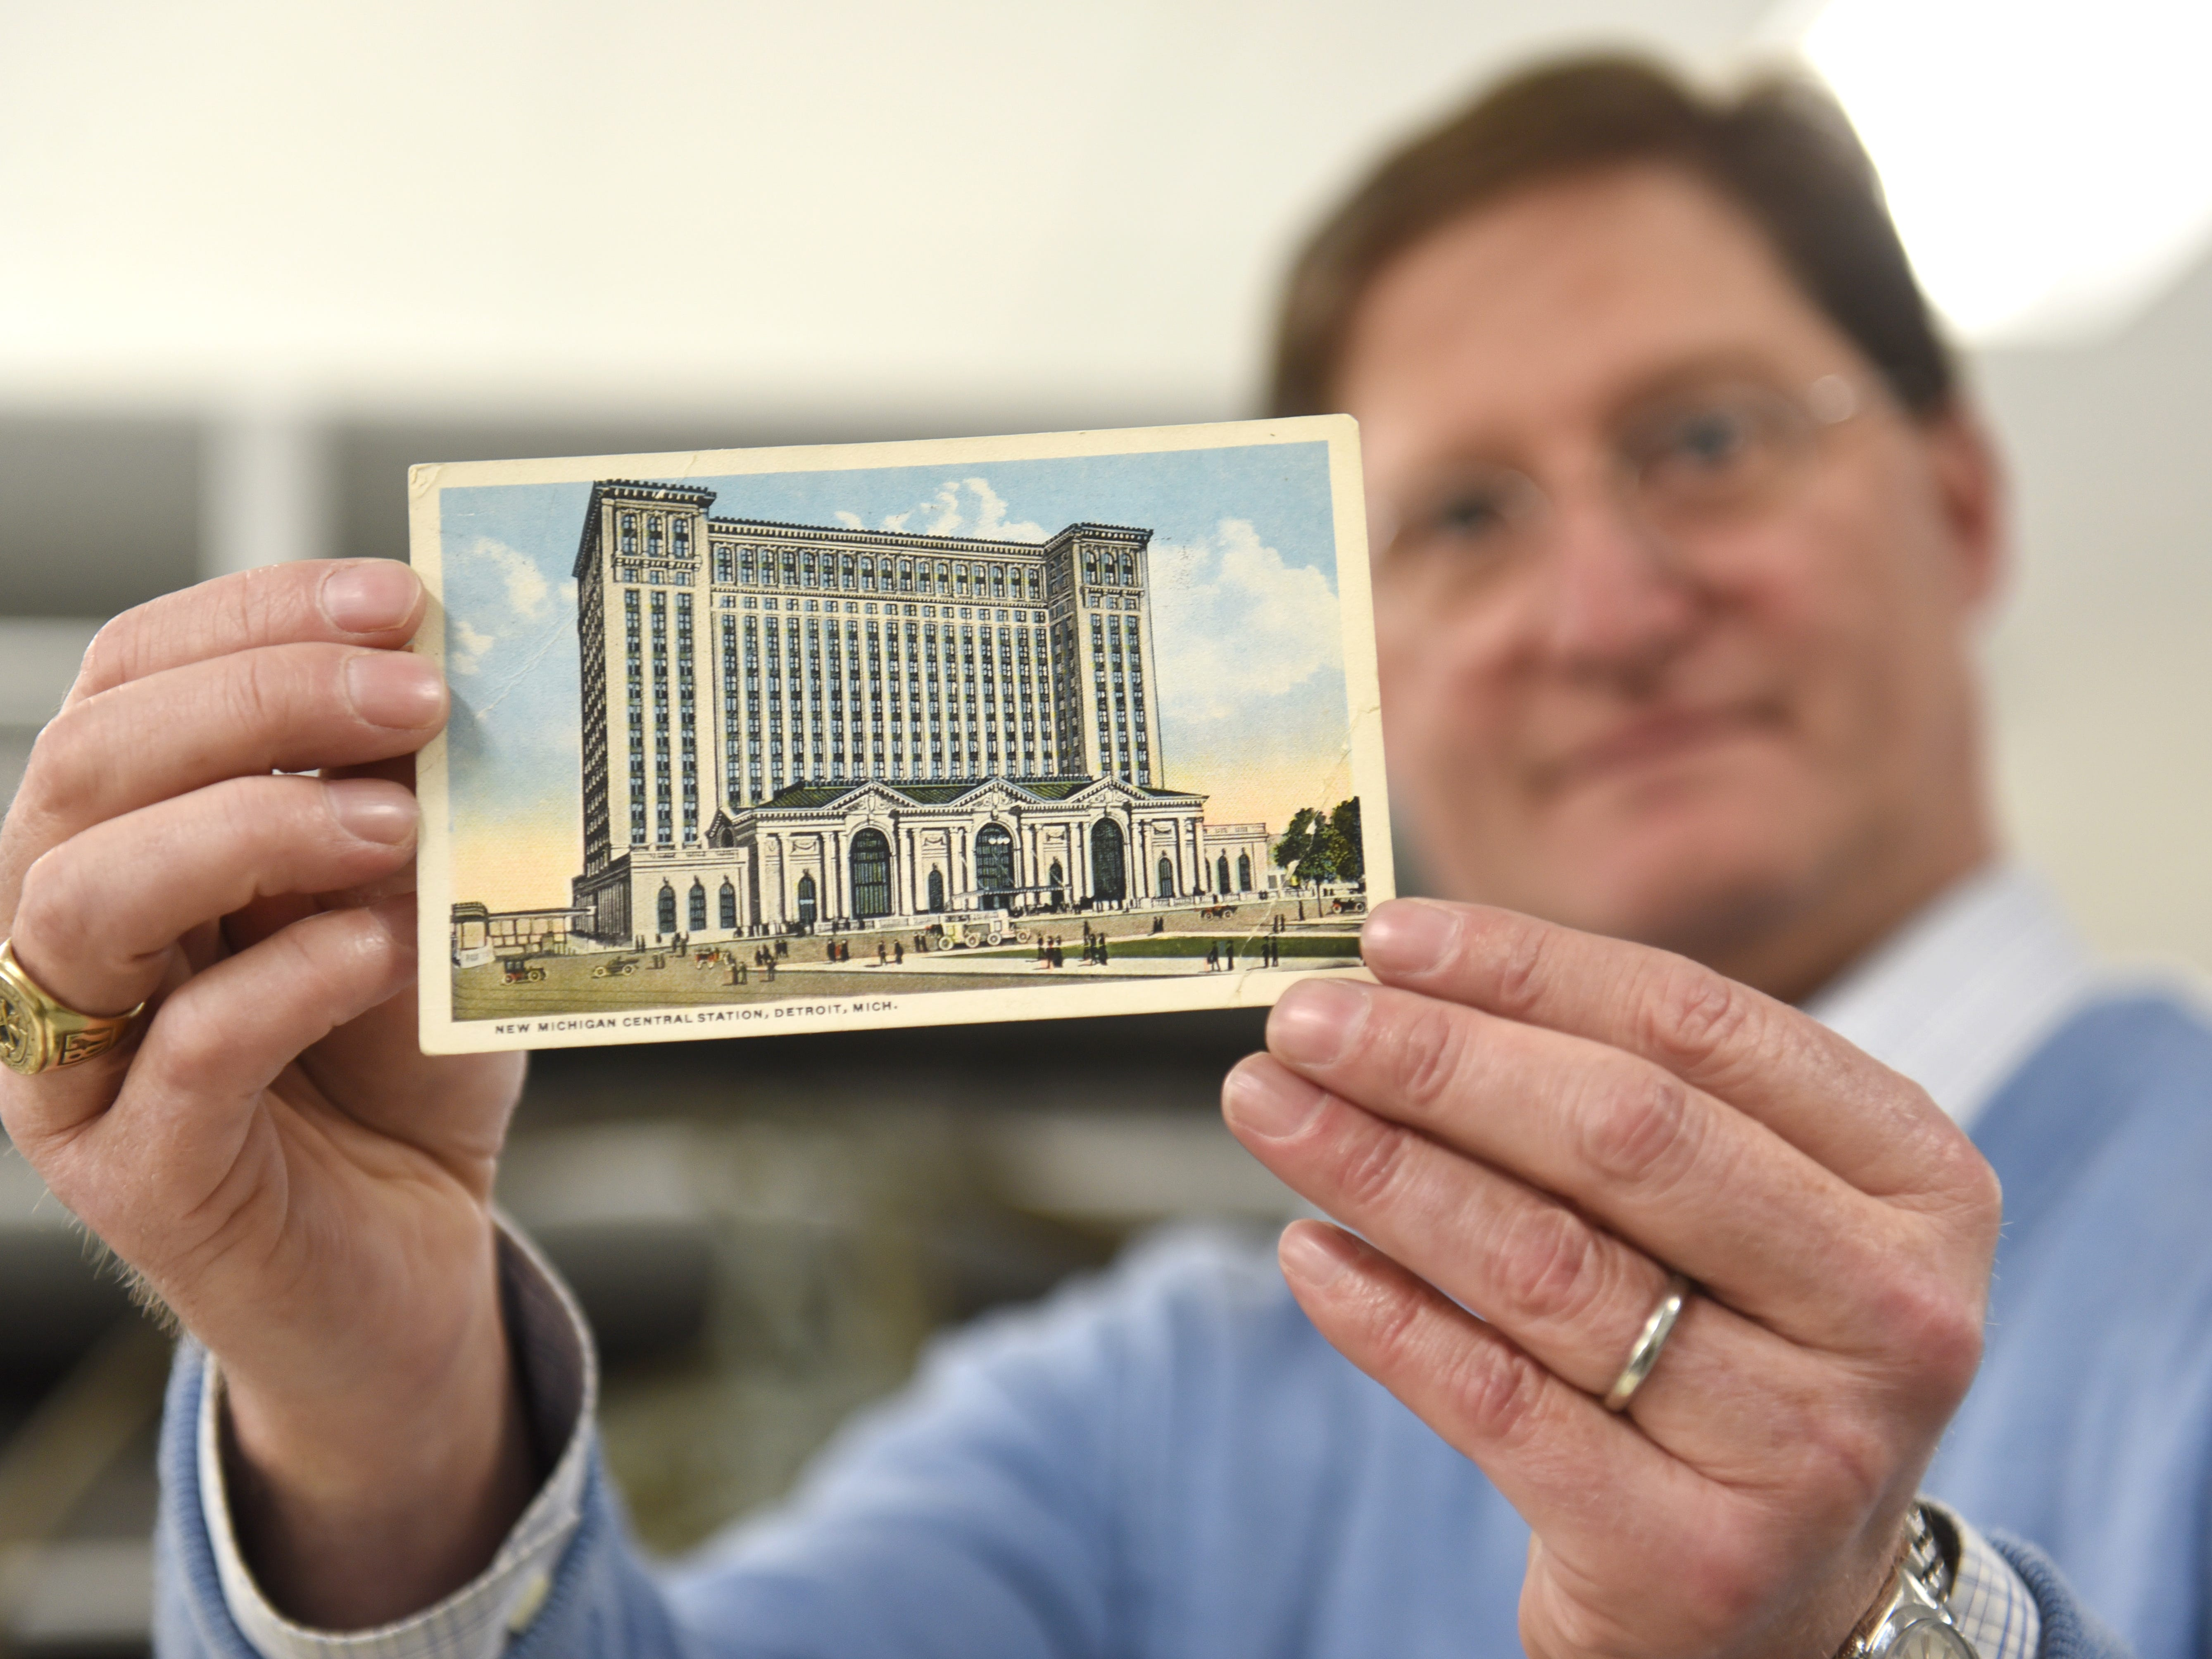 Ted Ryan, heritage brand manager, Ford Archives, holds a postcard from 1916 in Dearborn on Friday, Jan. 11, 2019, which will be part of a display at the Michigan Central Train Station. Ryan displayed many items which will be displayed at the Michigan Central Station's Winter Festival on Jan. 18-27.